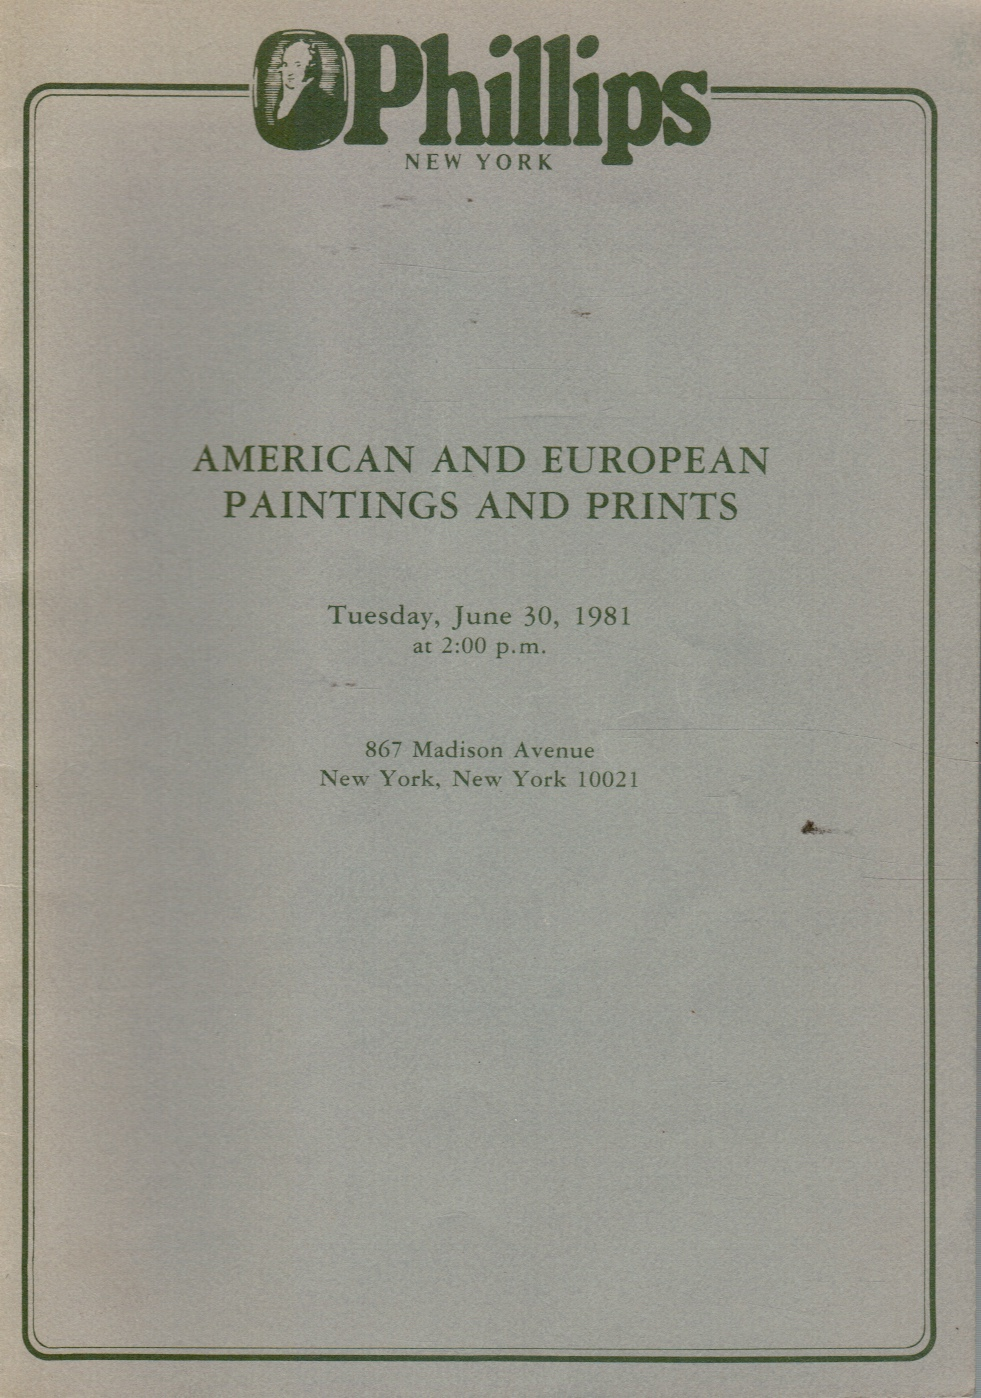 Image for American and European Paintings and Prints June 30, 1981